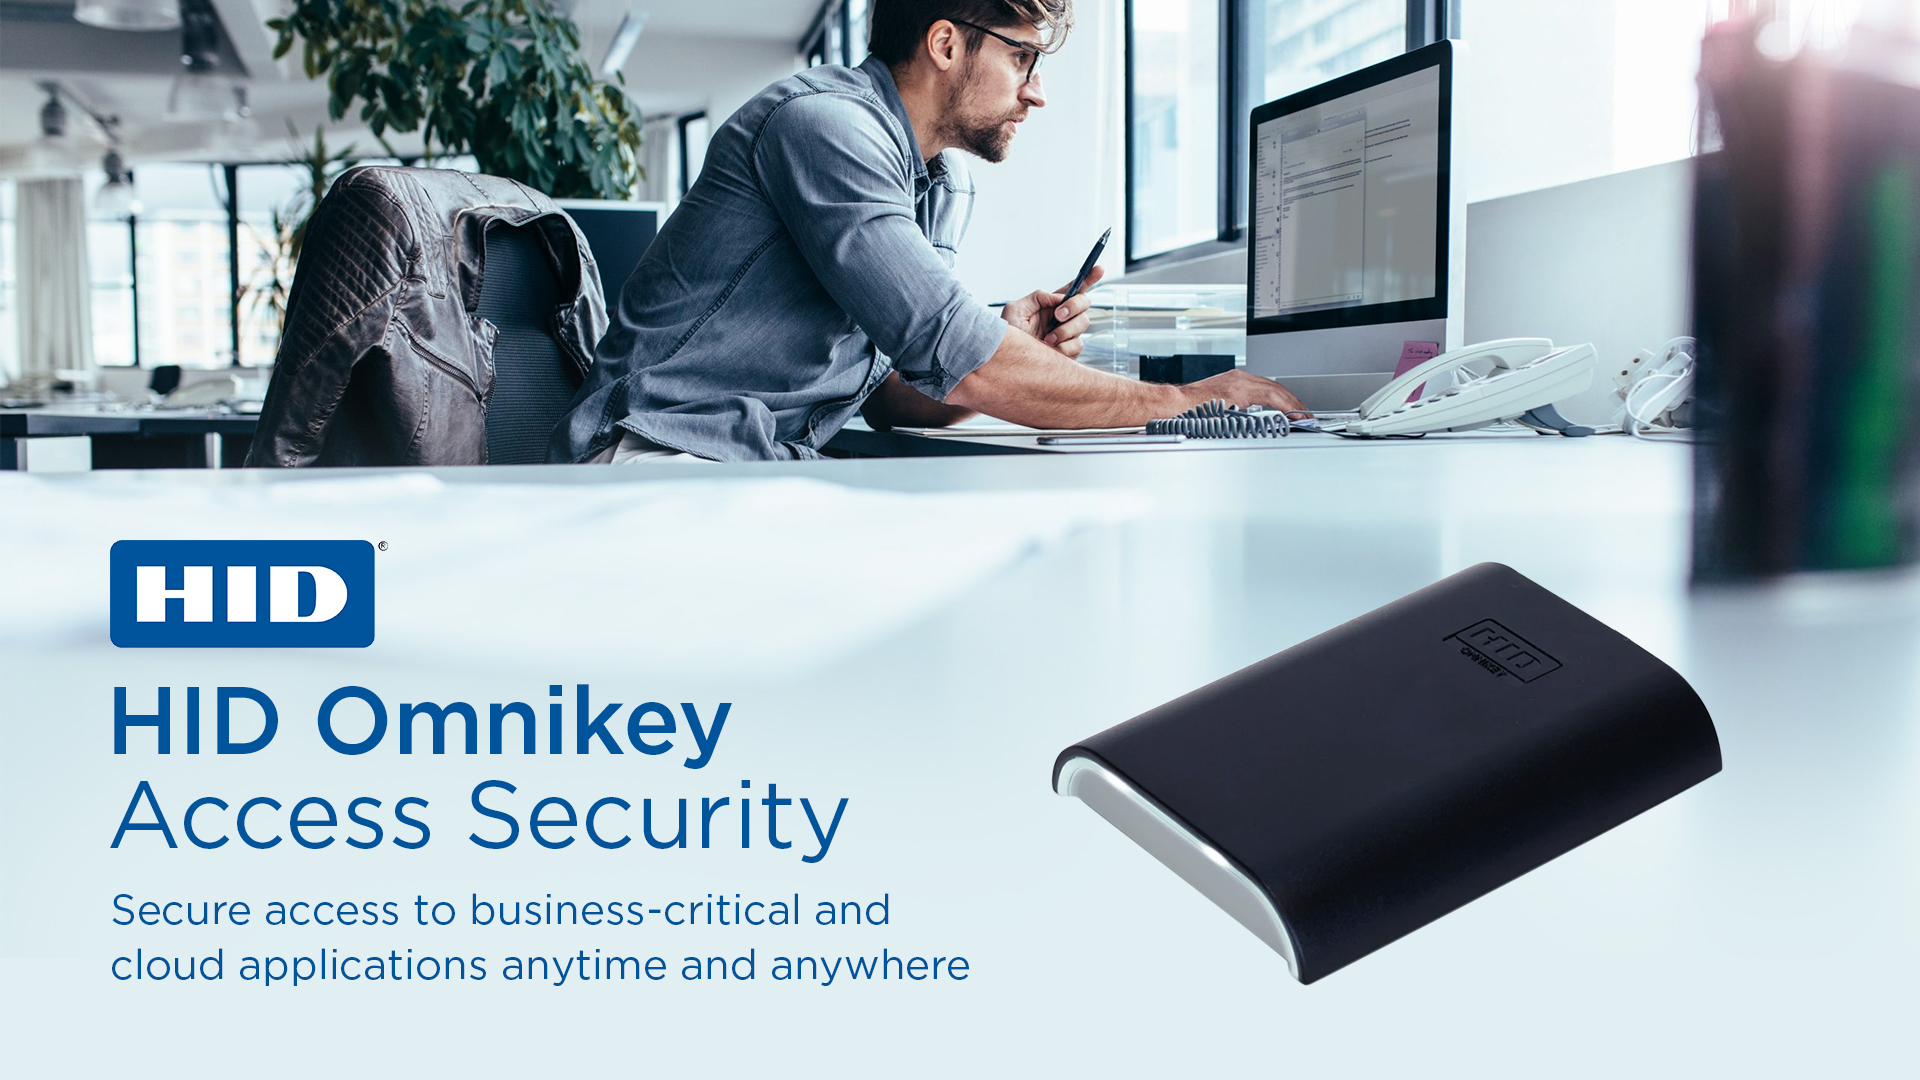 HID Omnikey Access Security